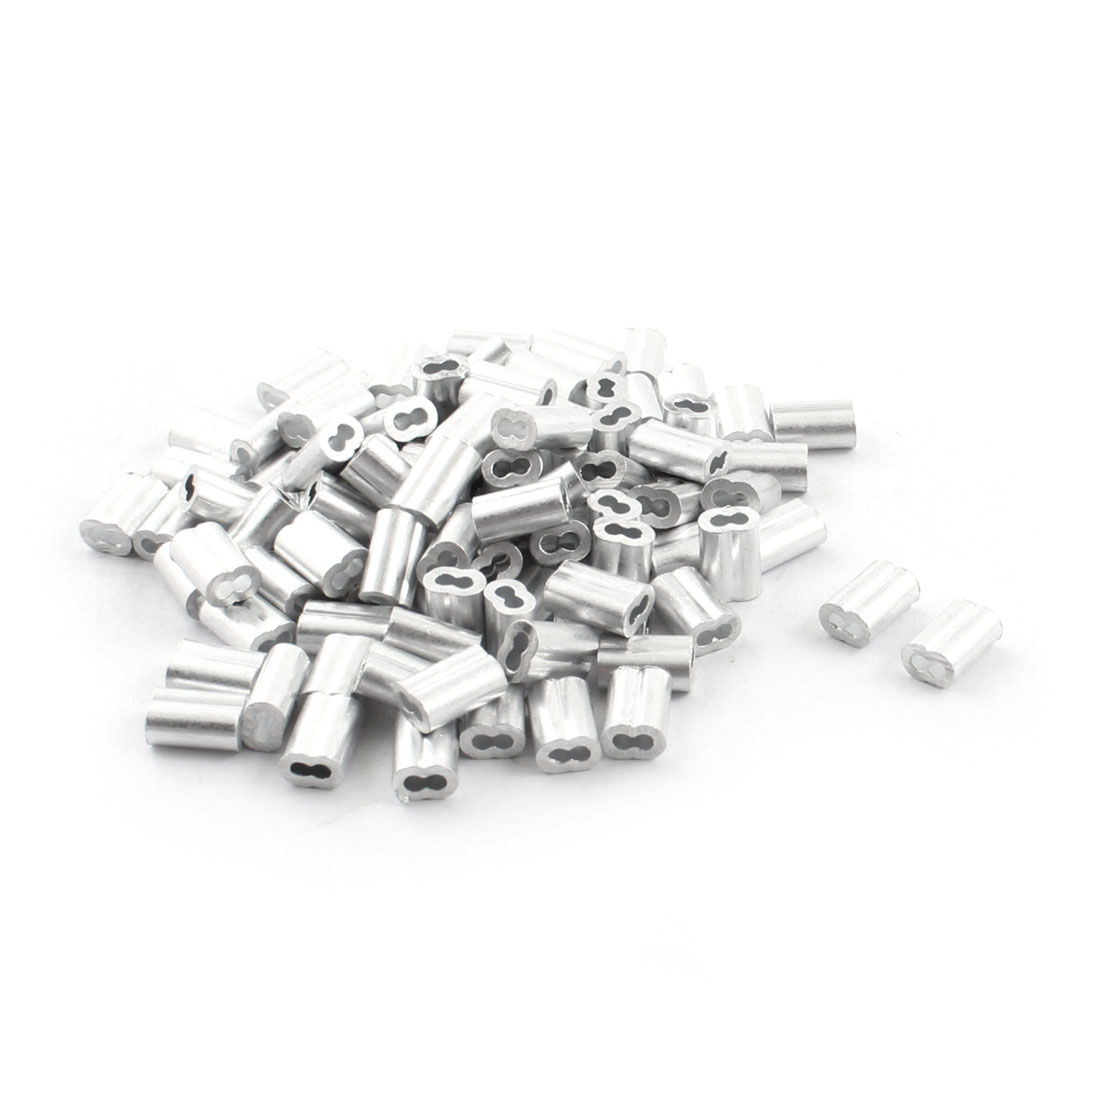 "100Pcs 2/25""x 3/8"" Aluminum Hourglass Ferrules Sleeve Crimp for 1.5mm Wire Rope"